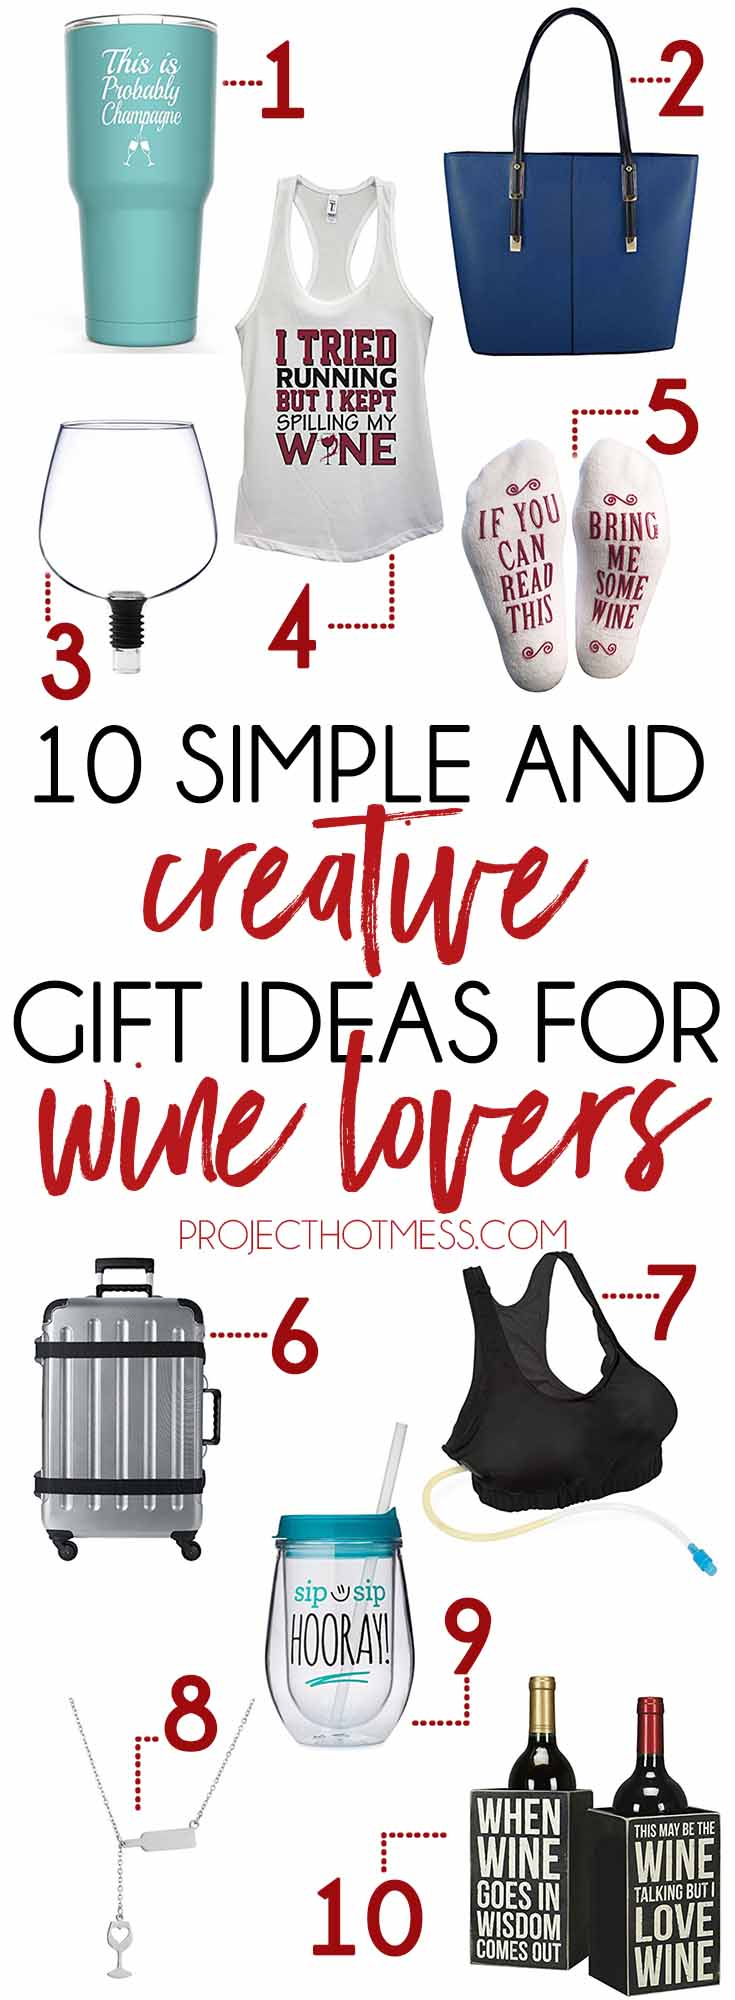 Buying gifts doesn't have to be hard with this gift guide full of fantastic gift ideas for wine lovers. Maybe you'll find something for yourself too!